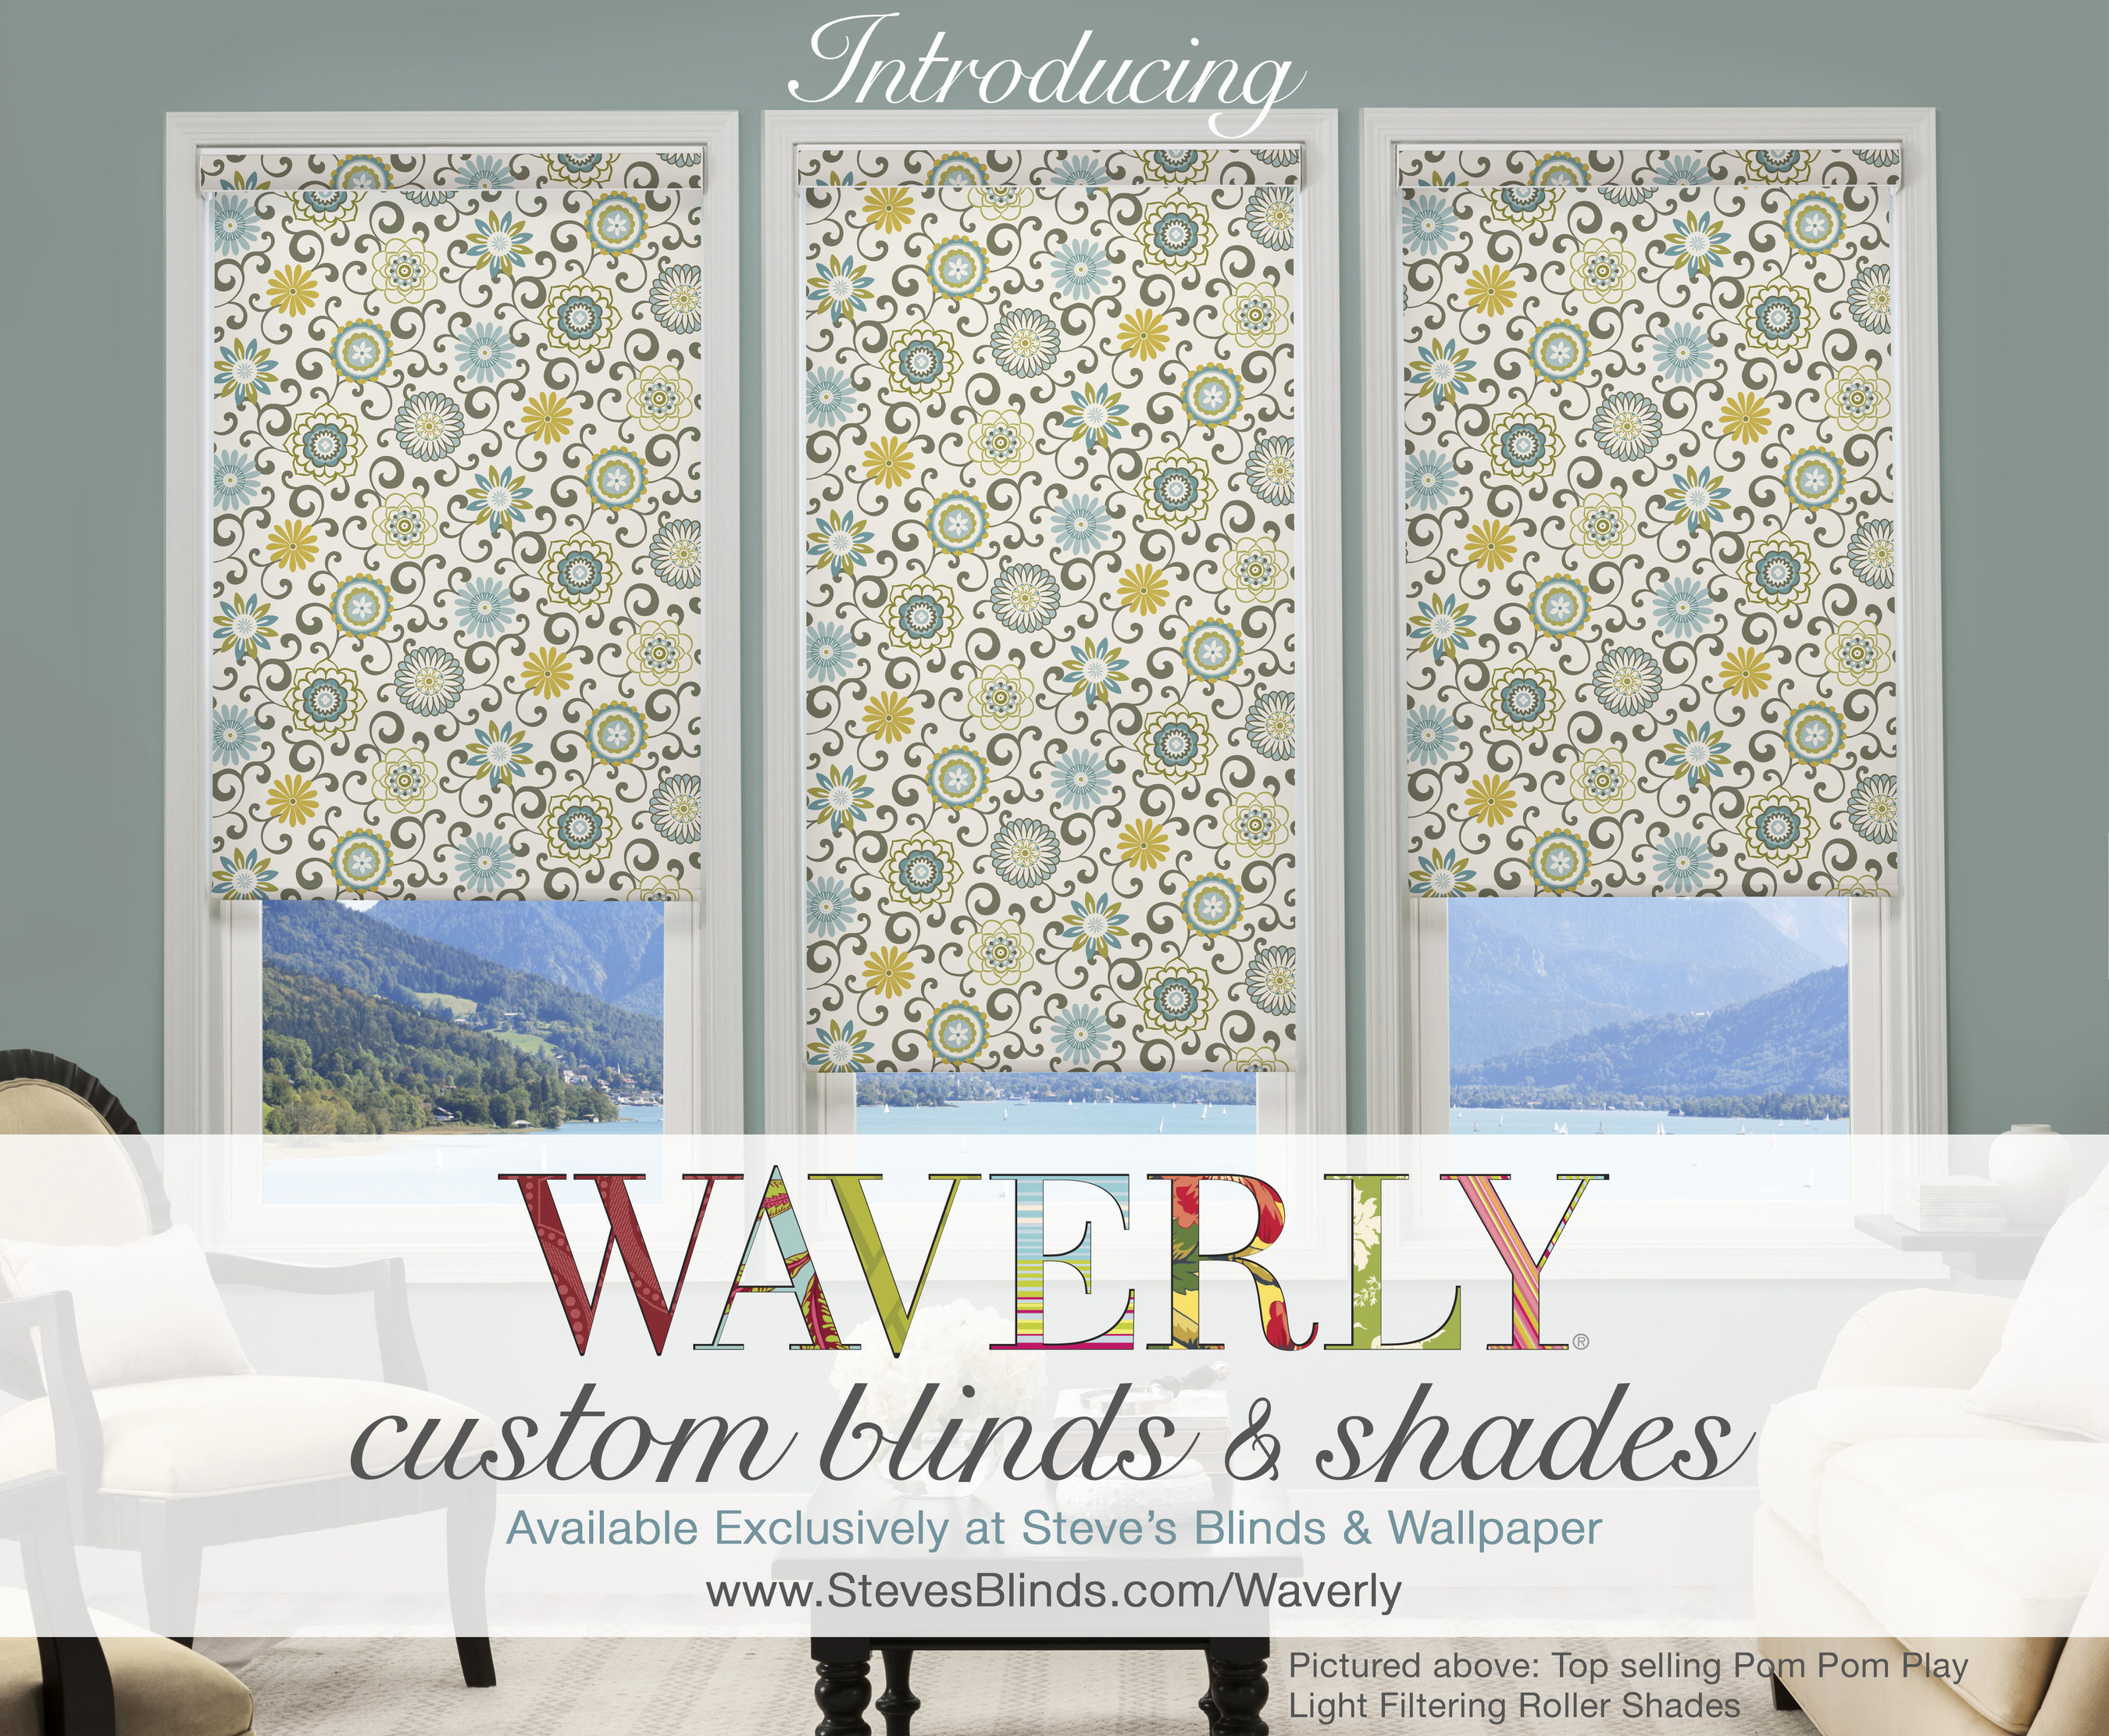 Steves Blinds Wallpaper and Waverly Join Forces to Introduce